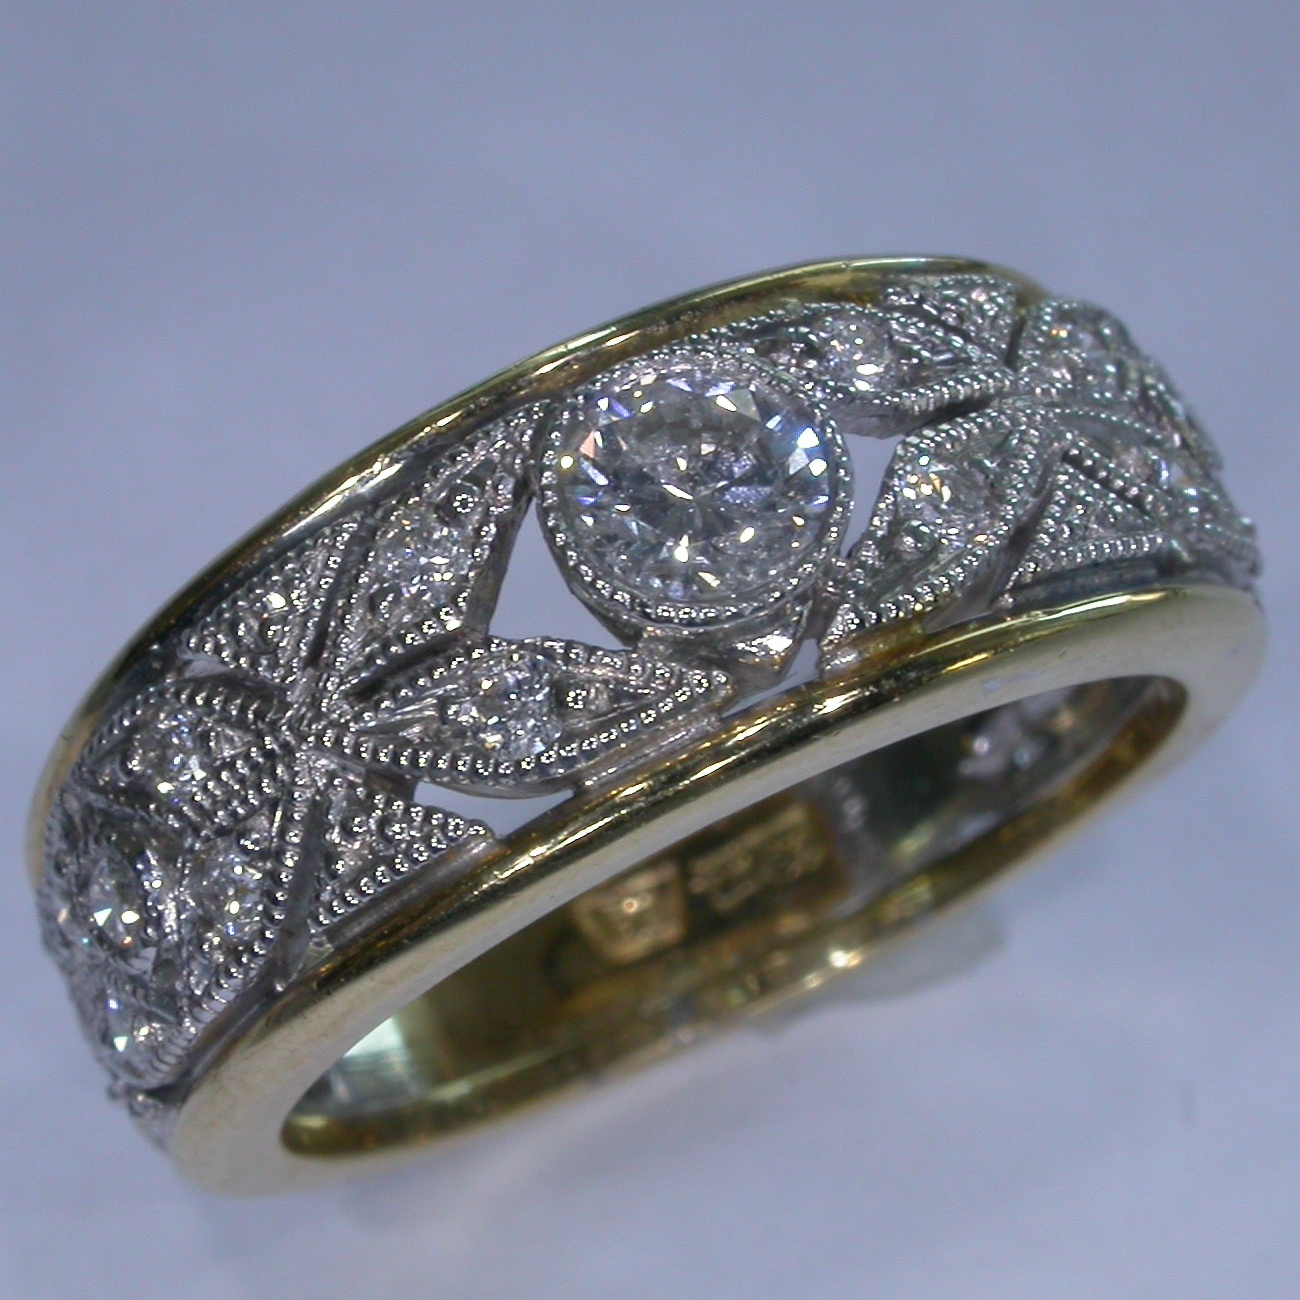 Diamond Engagement Ring in Melbourne - #7238